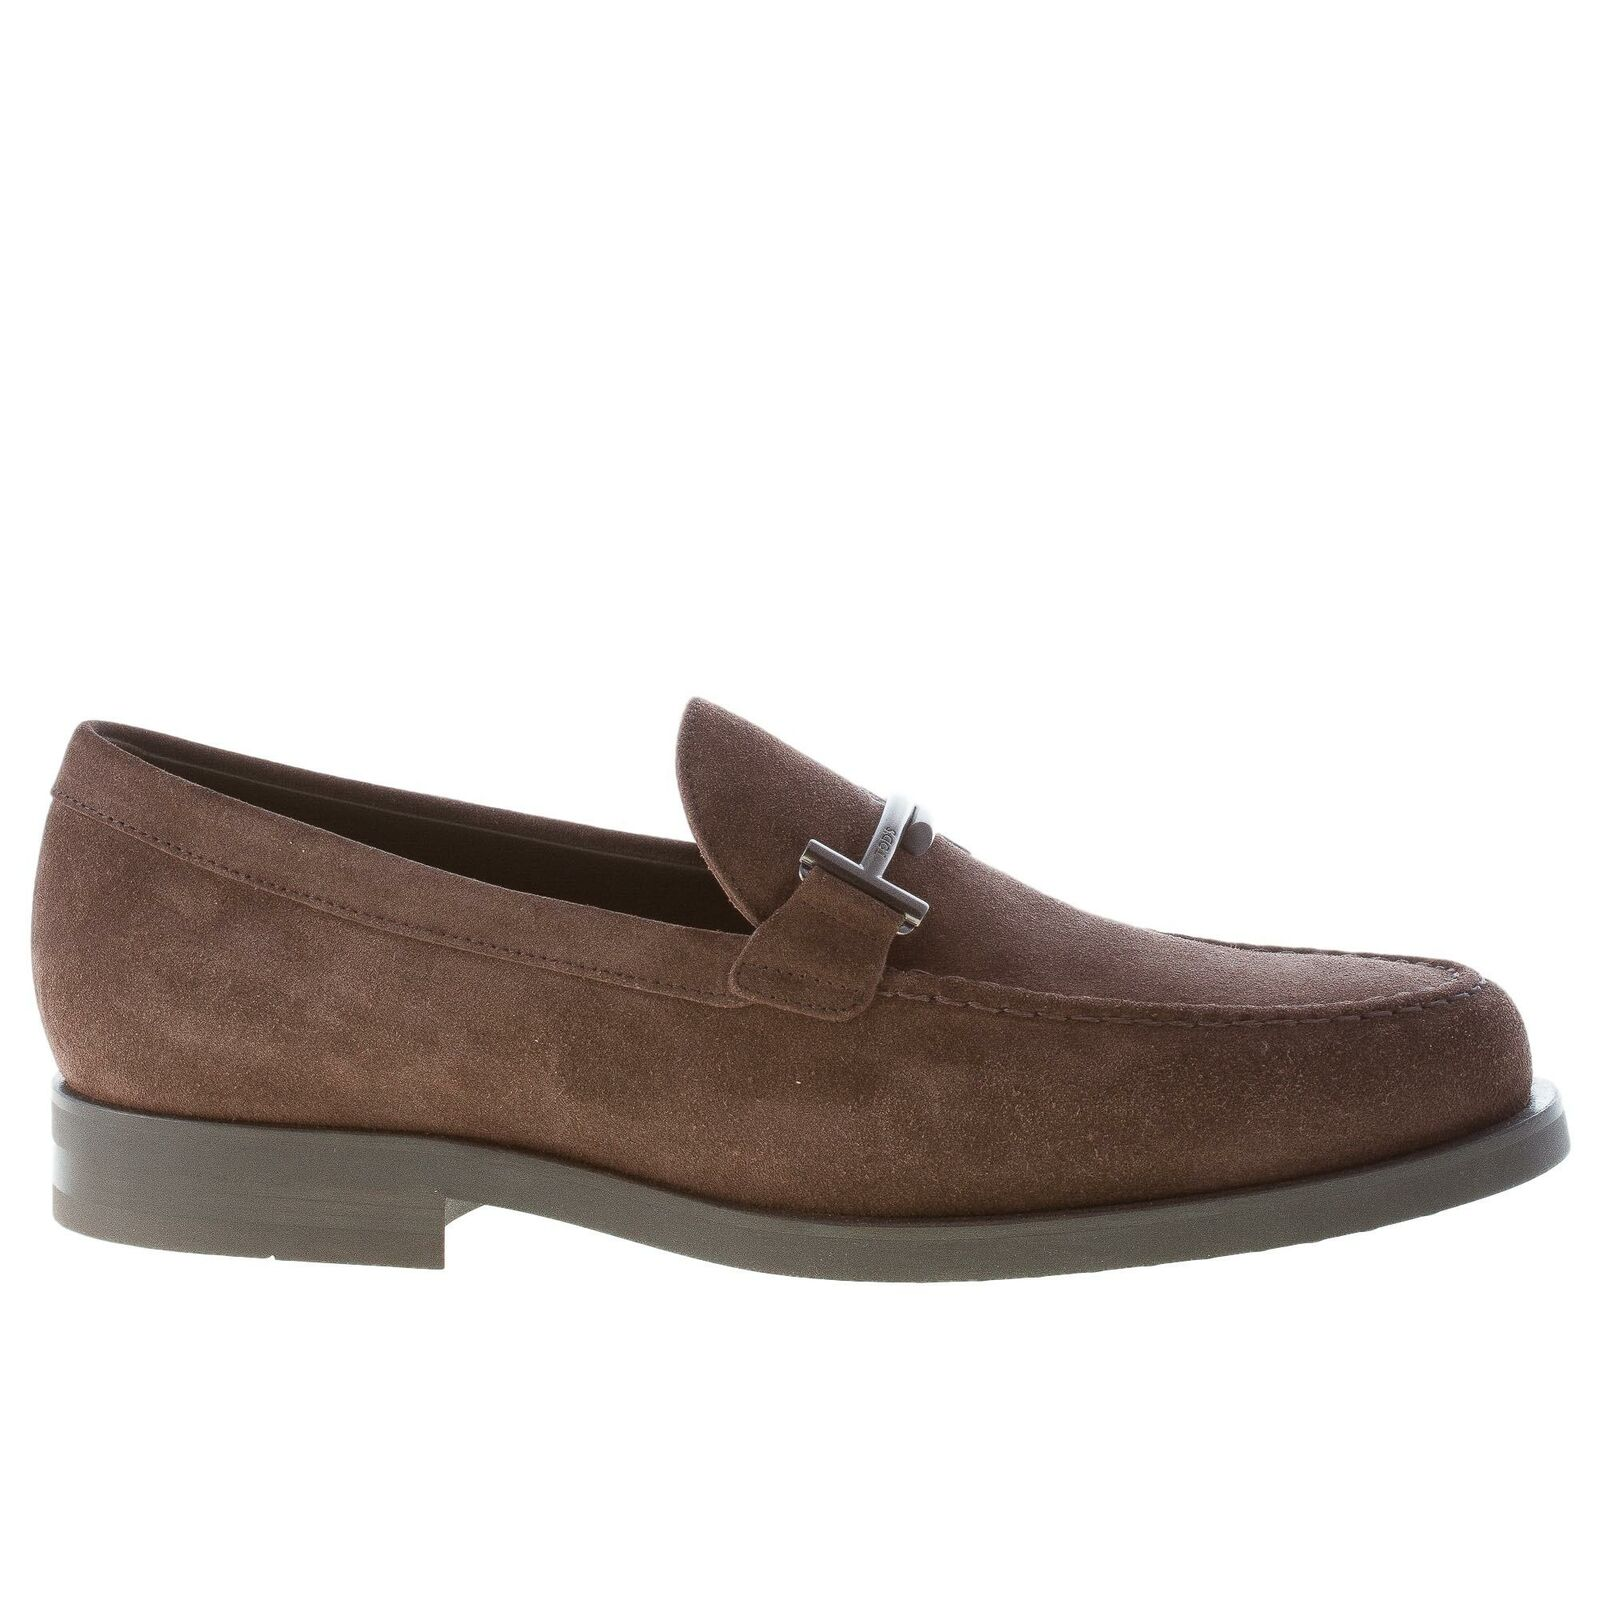 TOD'S men chaussures dark marron suede almond toe loafer with metal double T